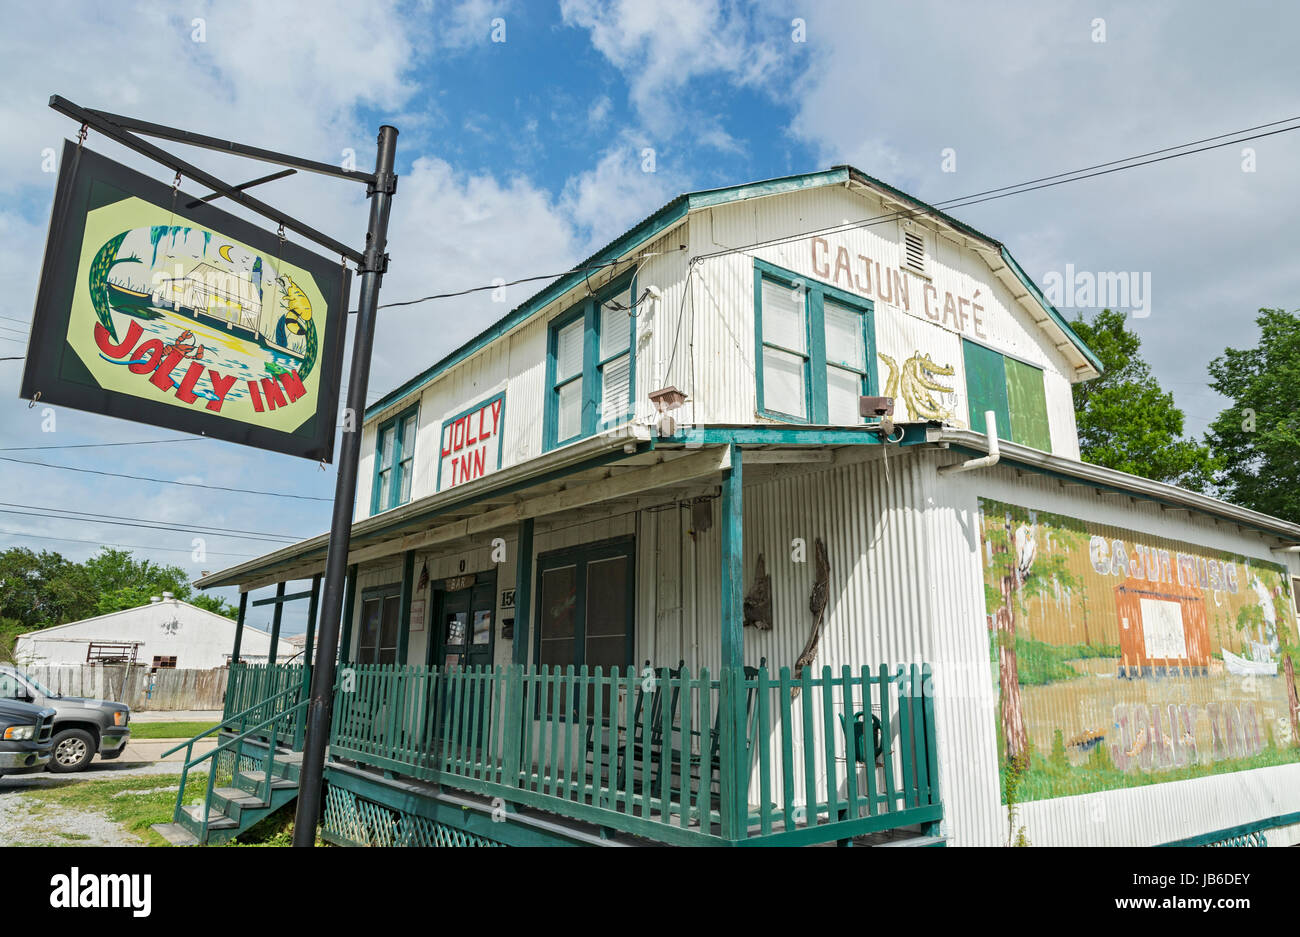 Louisiane, Houma, Jolly Inn, cuisine Cajun Cafe, bar, restaurant, salle de musique Cajun Photo Stock